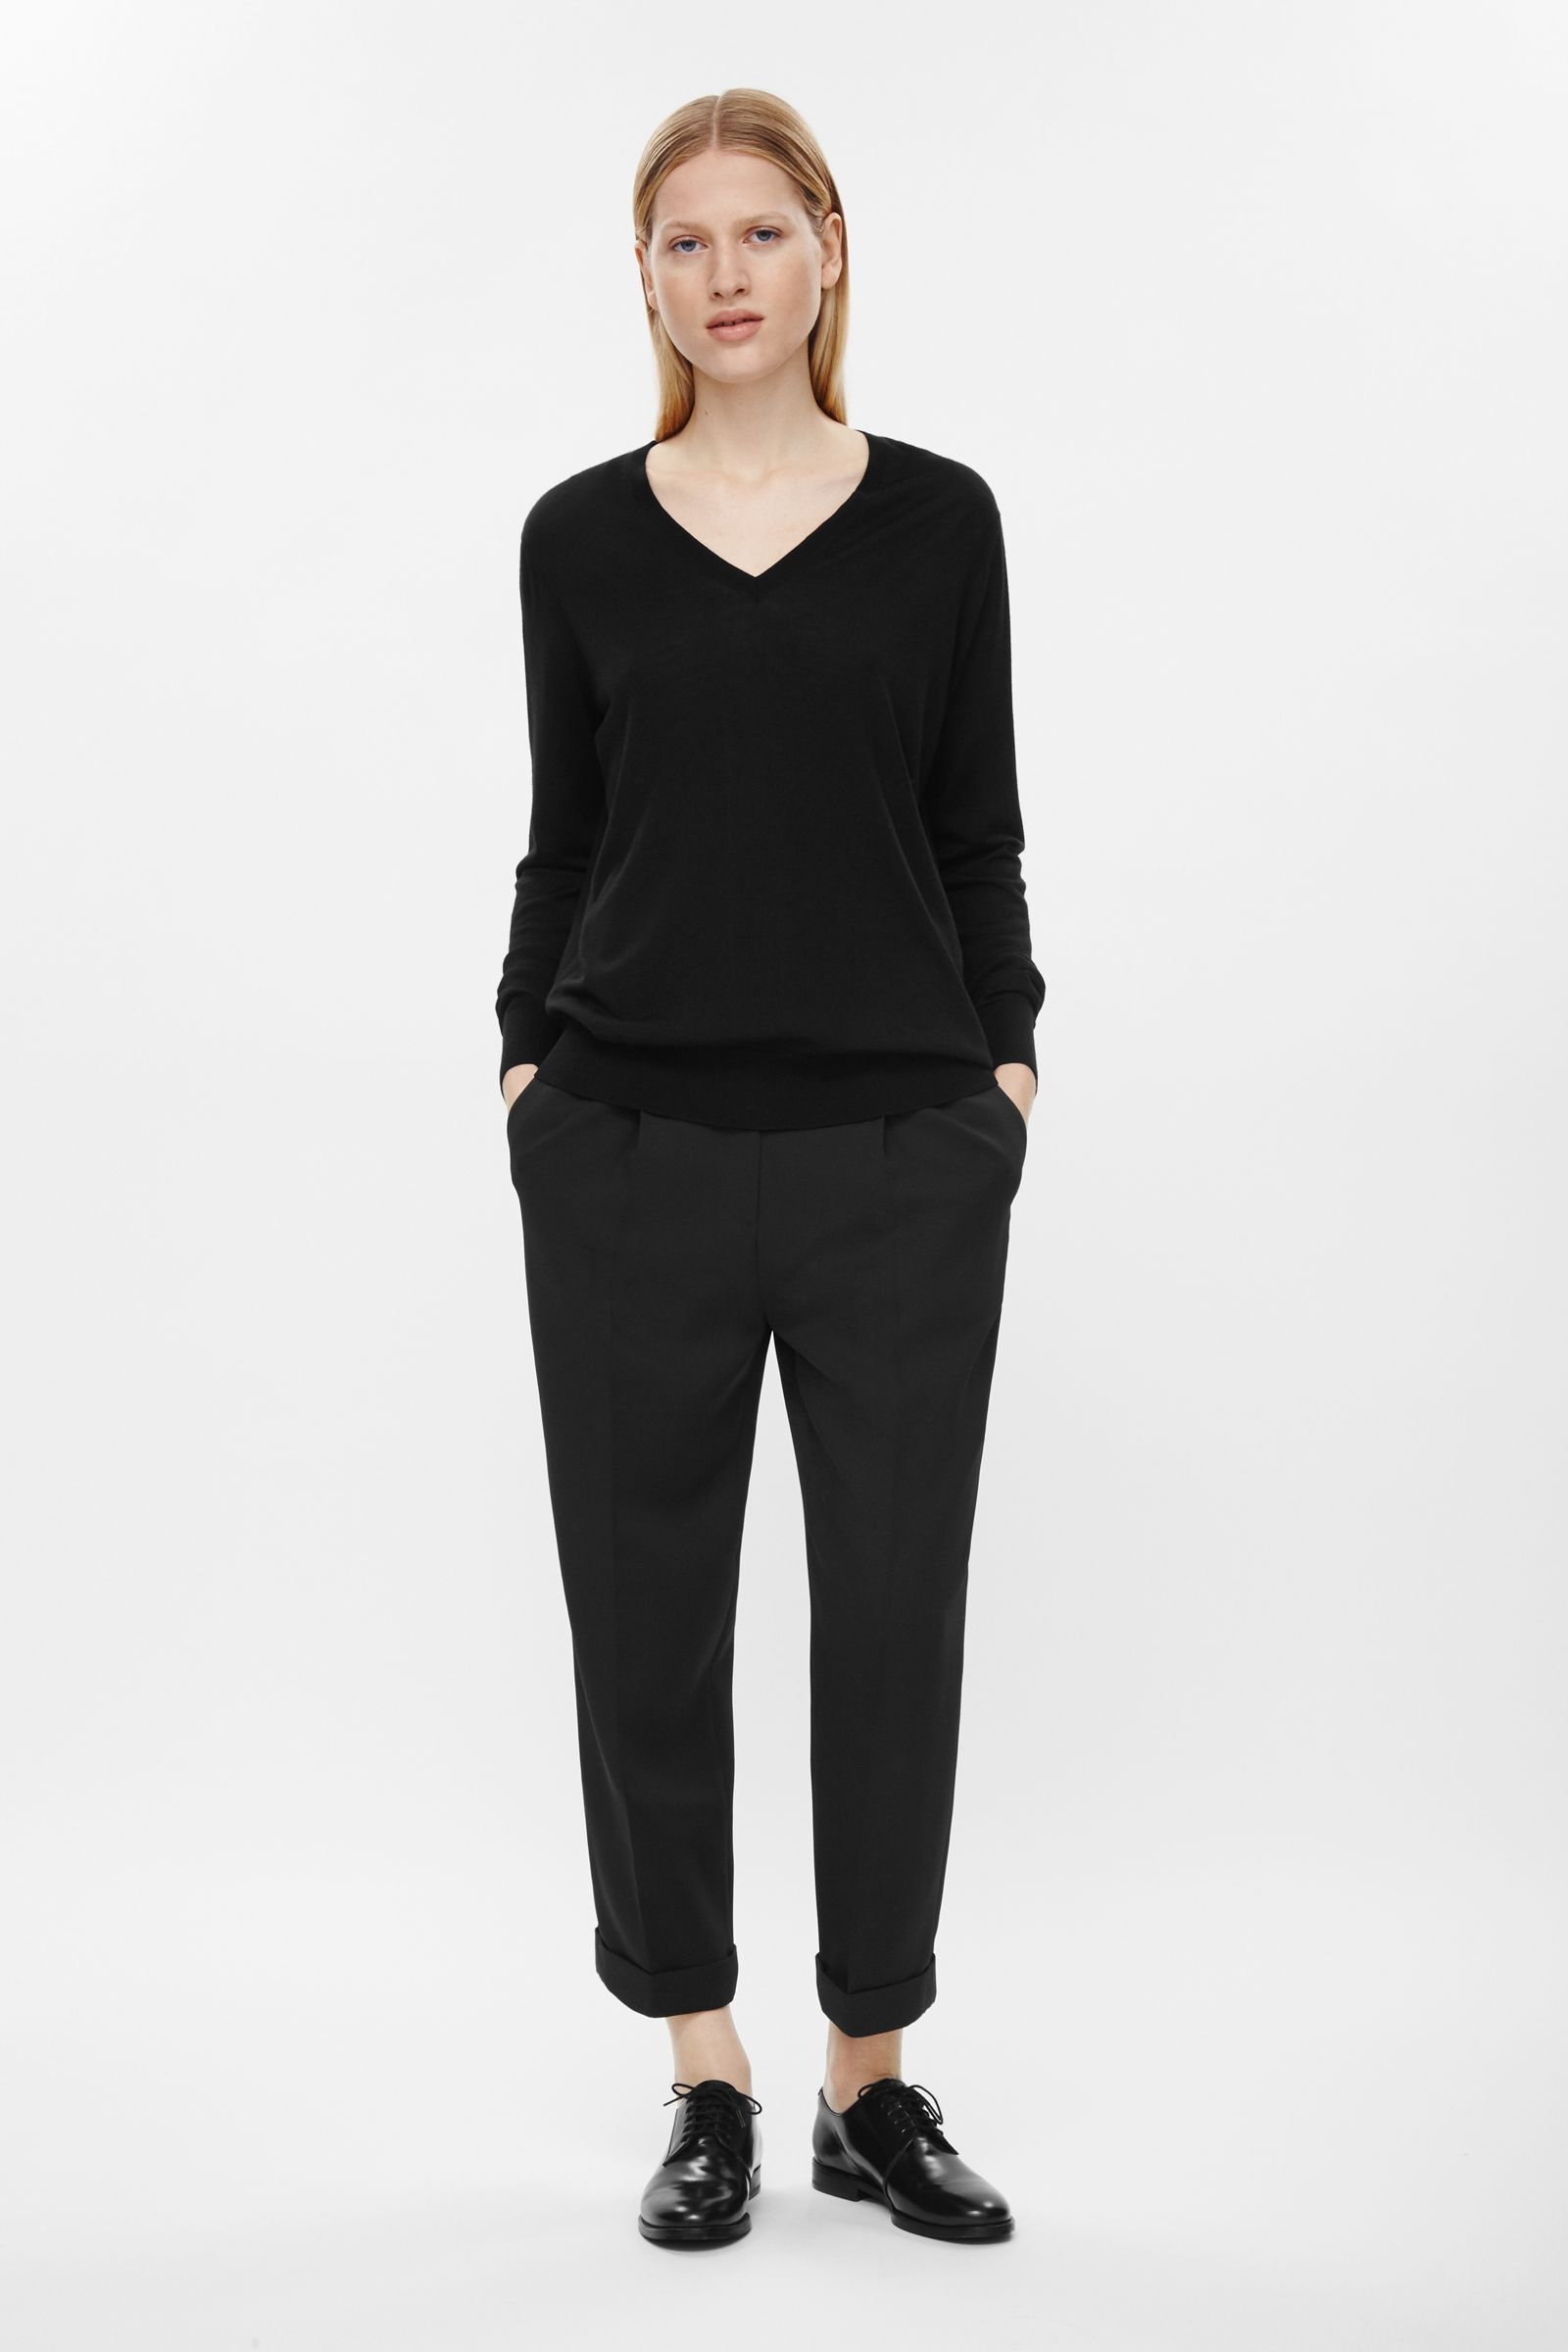 Straight cropped trouser, £69, Cos